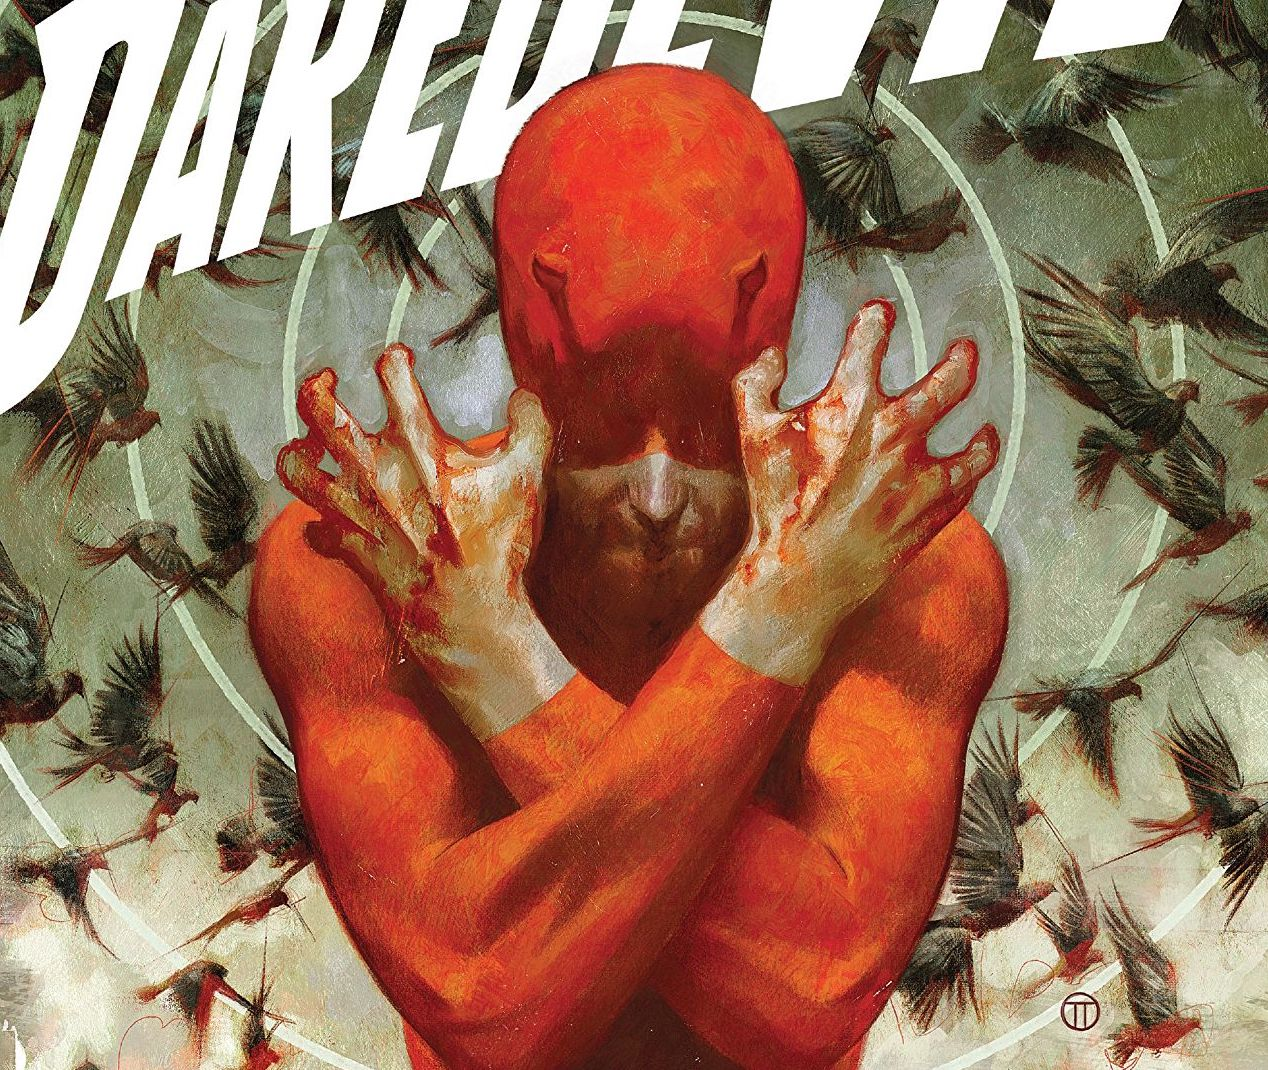 Daredevil #1 review: The devil's in the details